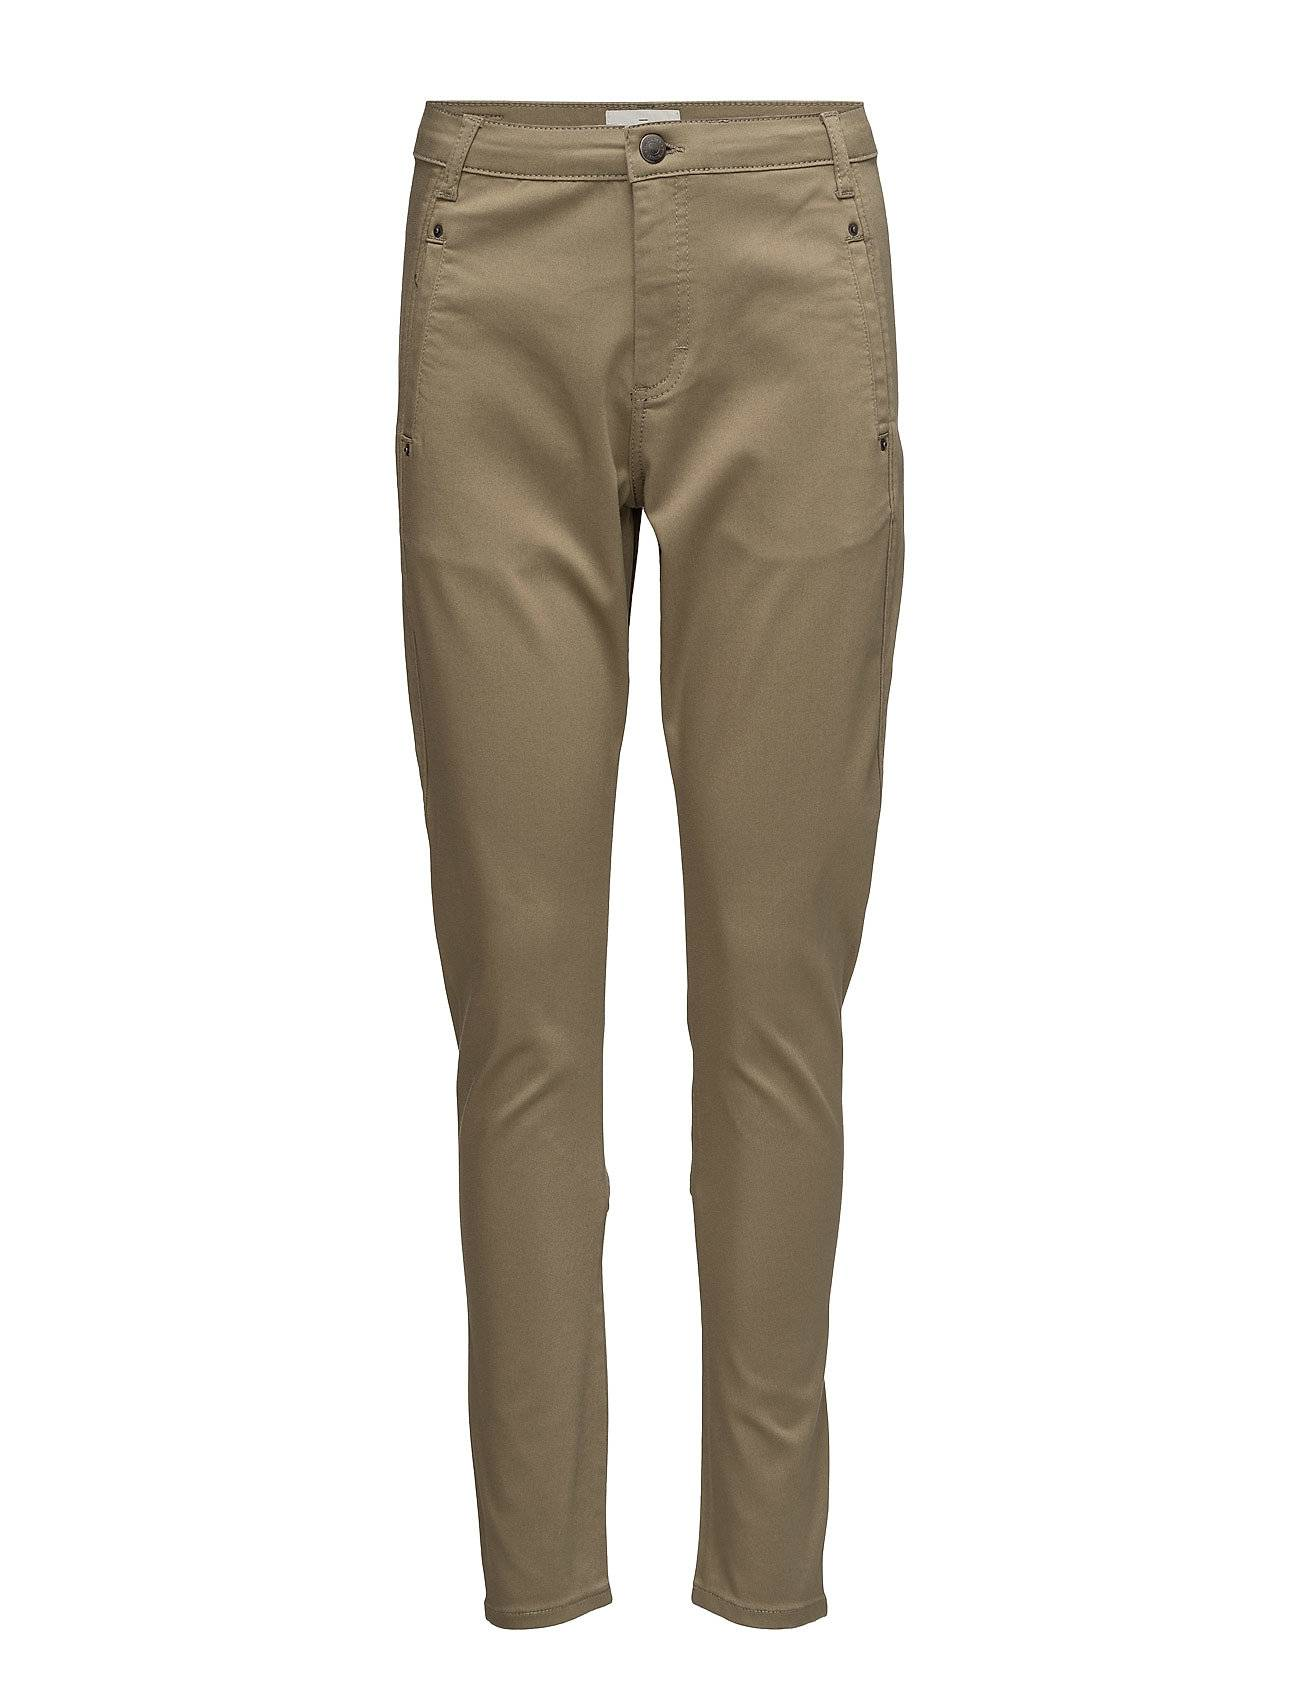 FIVEUNITS Jolie 606 Safari, Pants